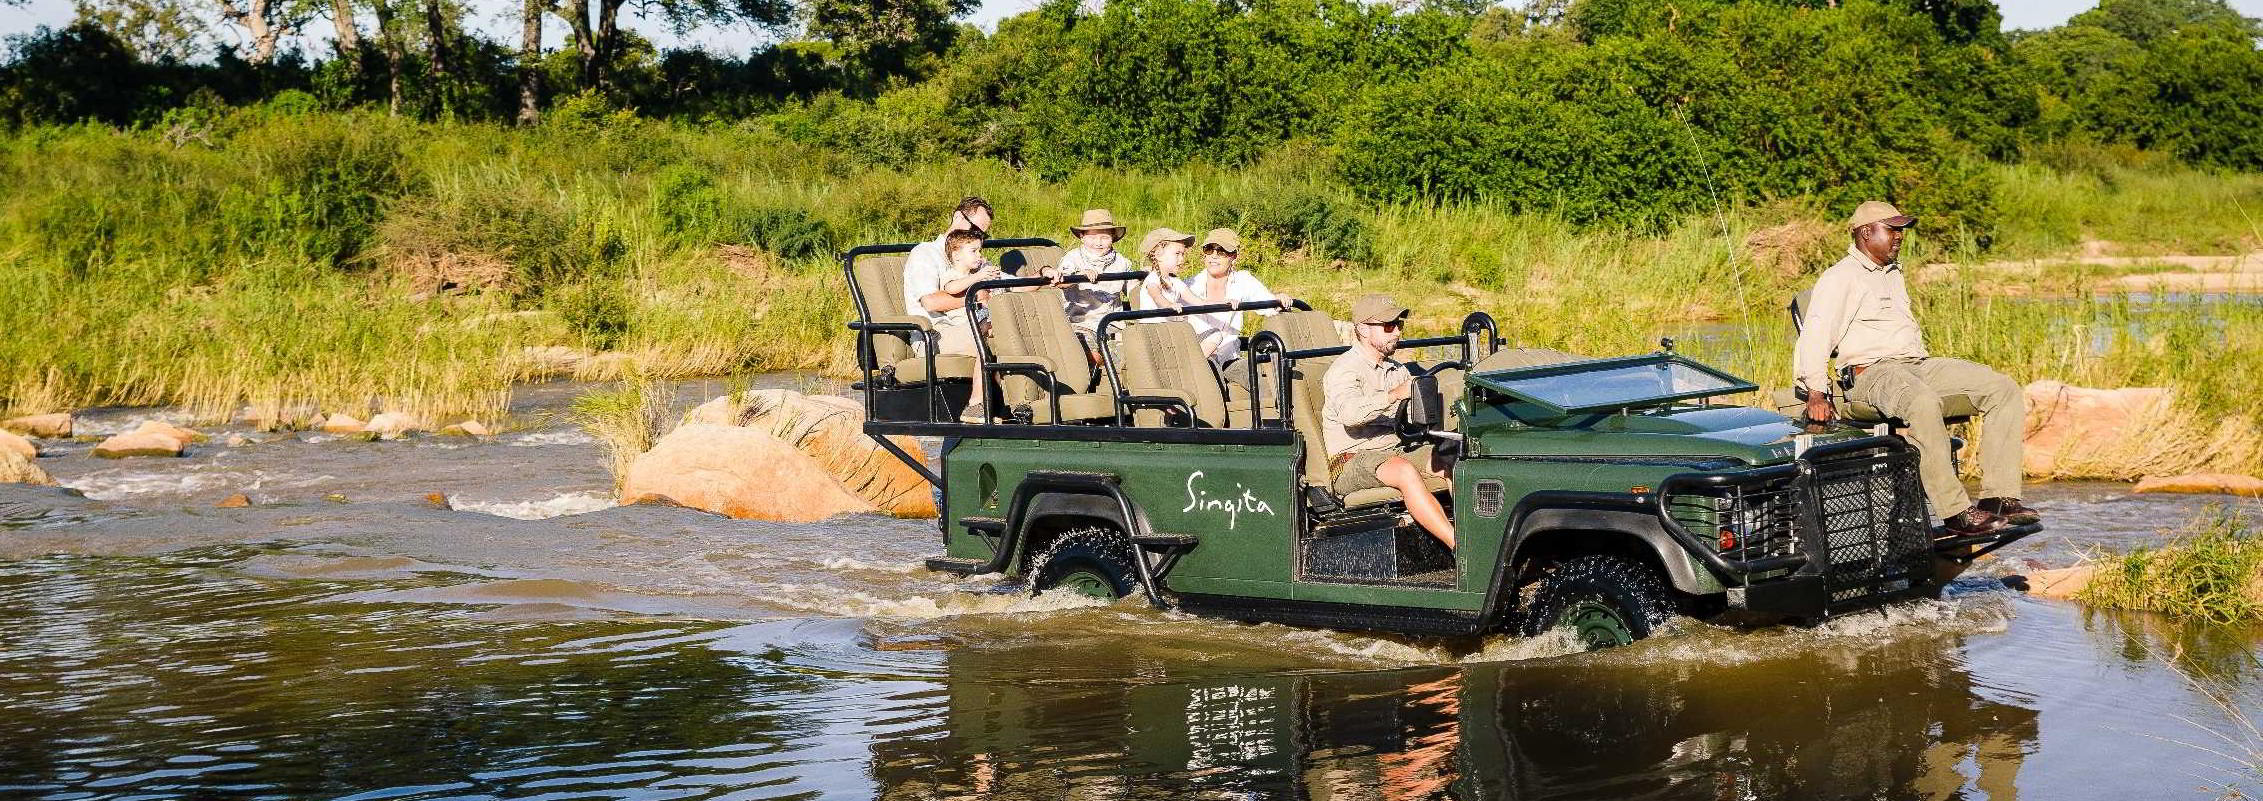 family-safari-drive-south-africa